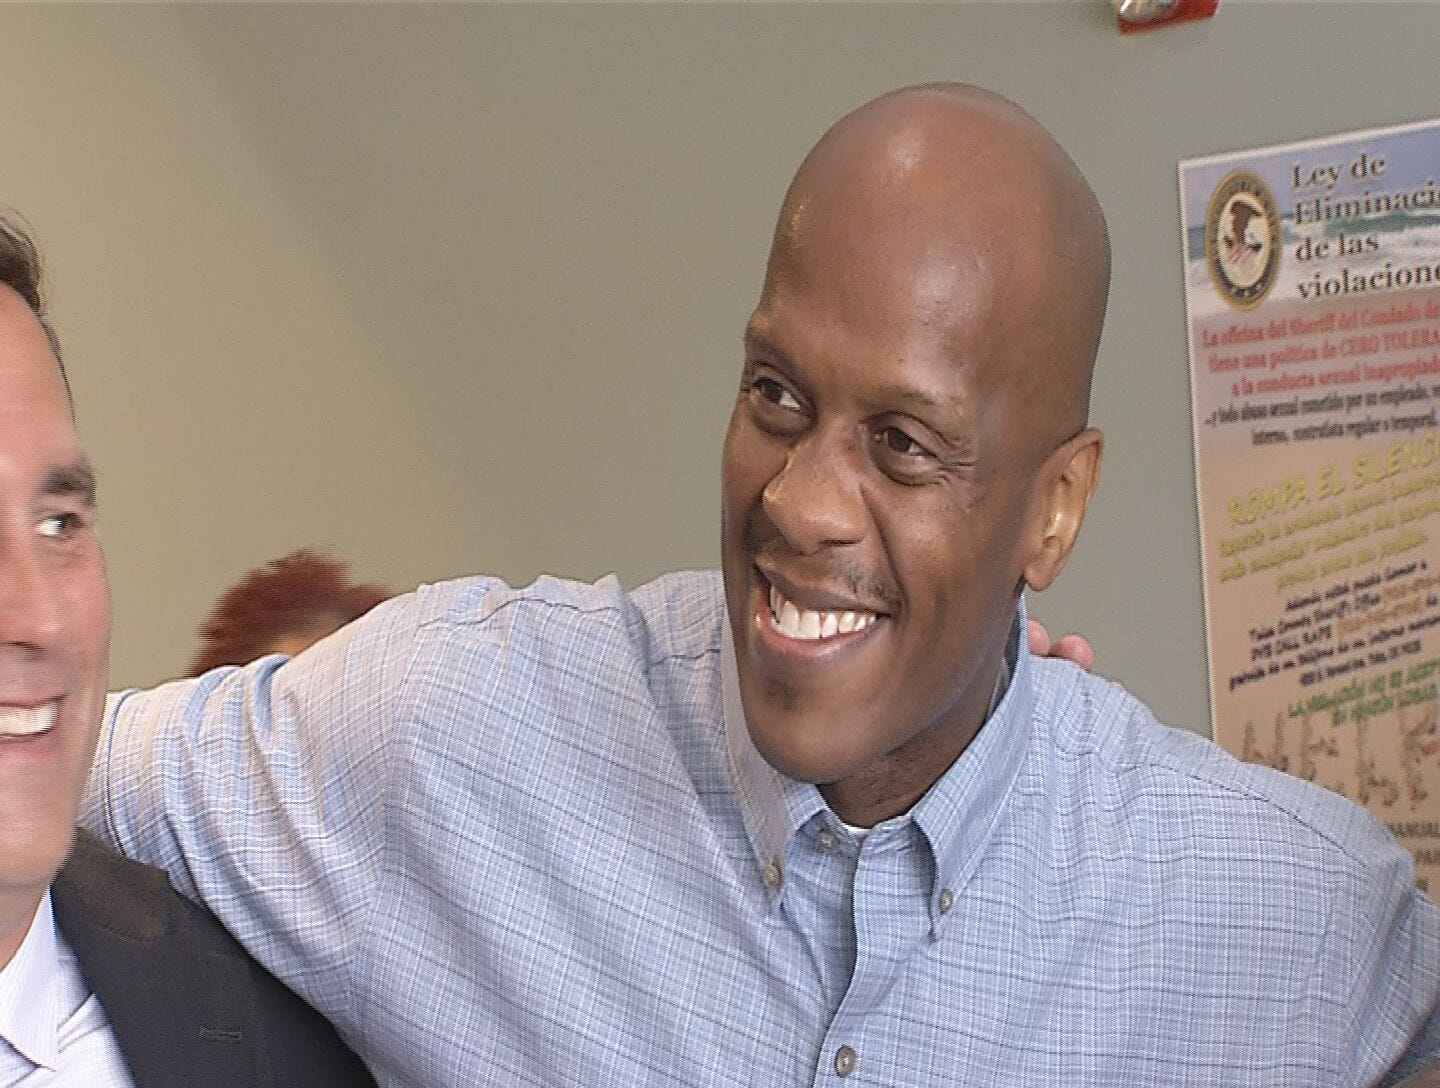 Tulsa Man Found Innocent After Serving 28 Years For Murder